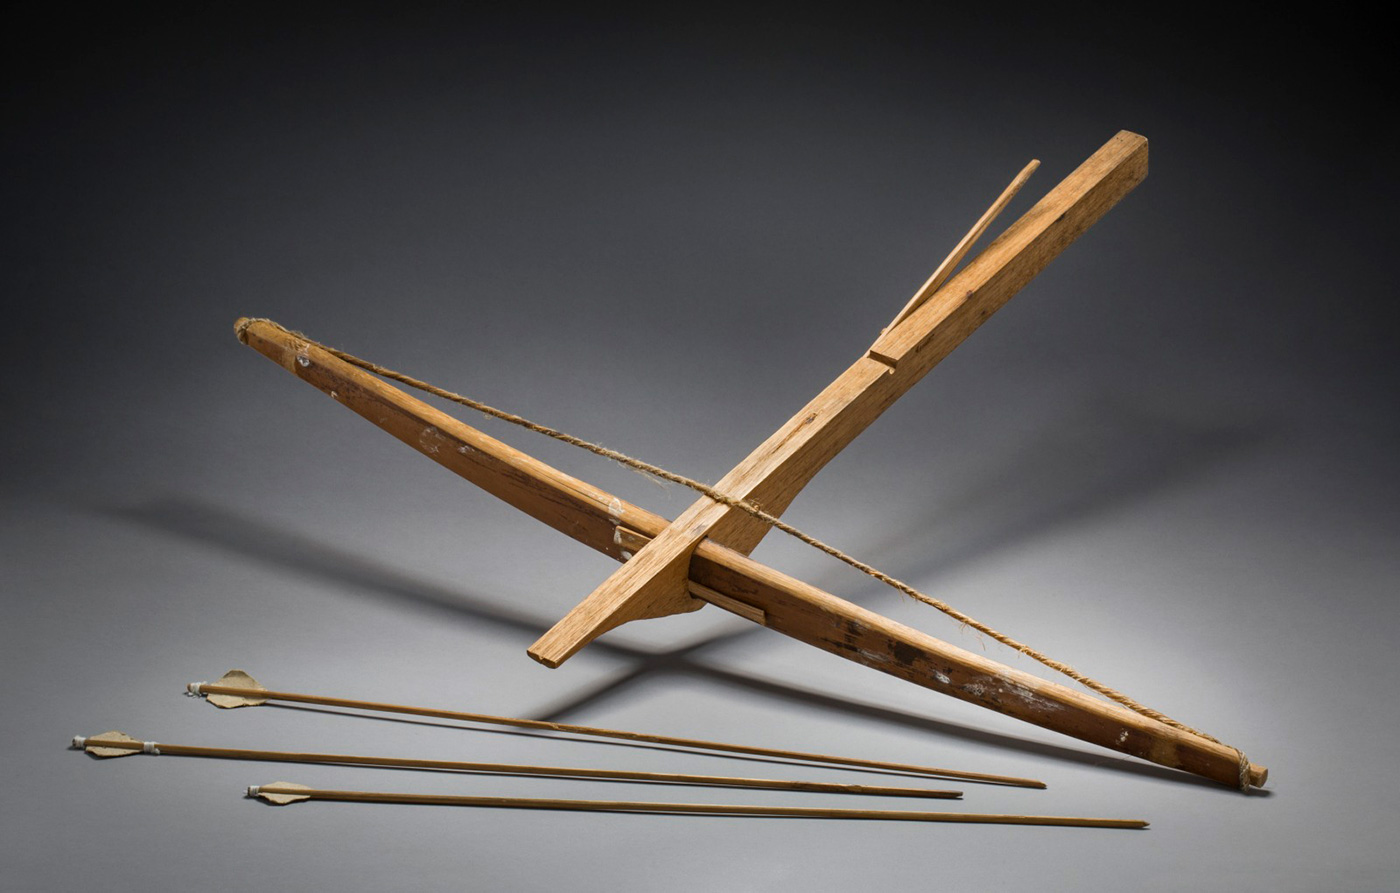 Timber cross box with three arrows. - click to view larger image